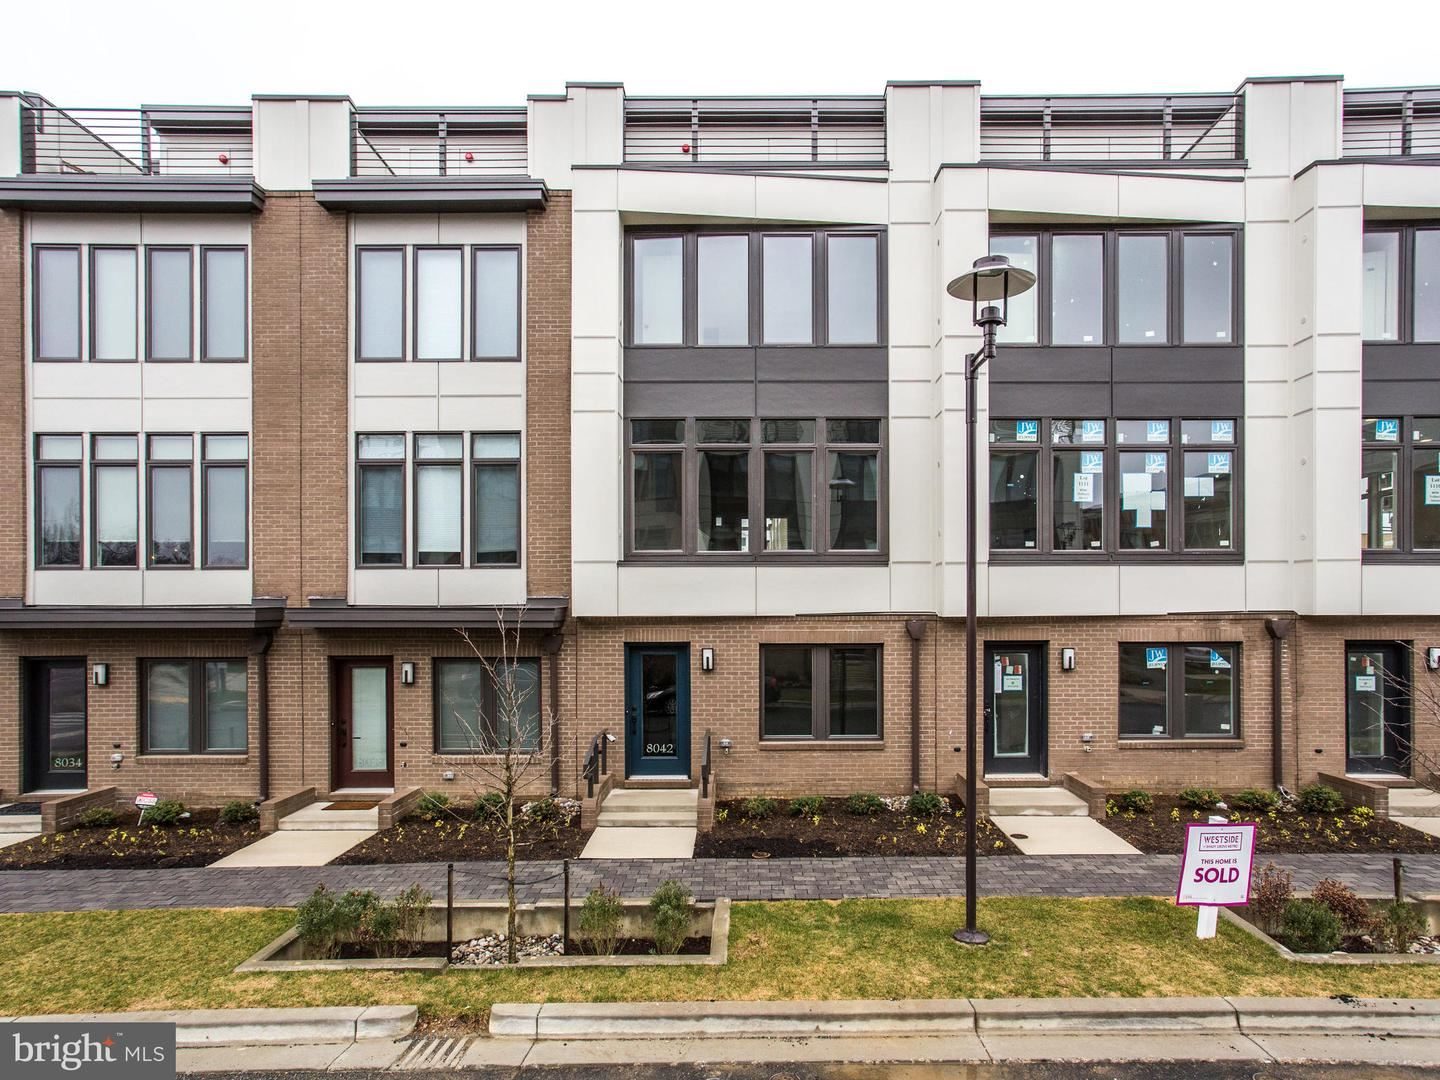 Photo for 8042 TRIBECA ST, ROCKVILLE, MD 20855 (MLS # MDMC755438)